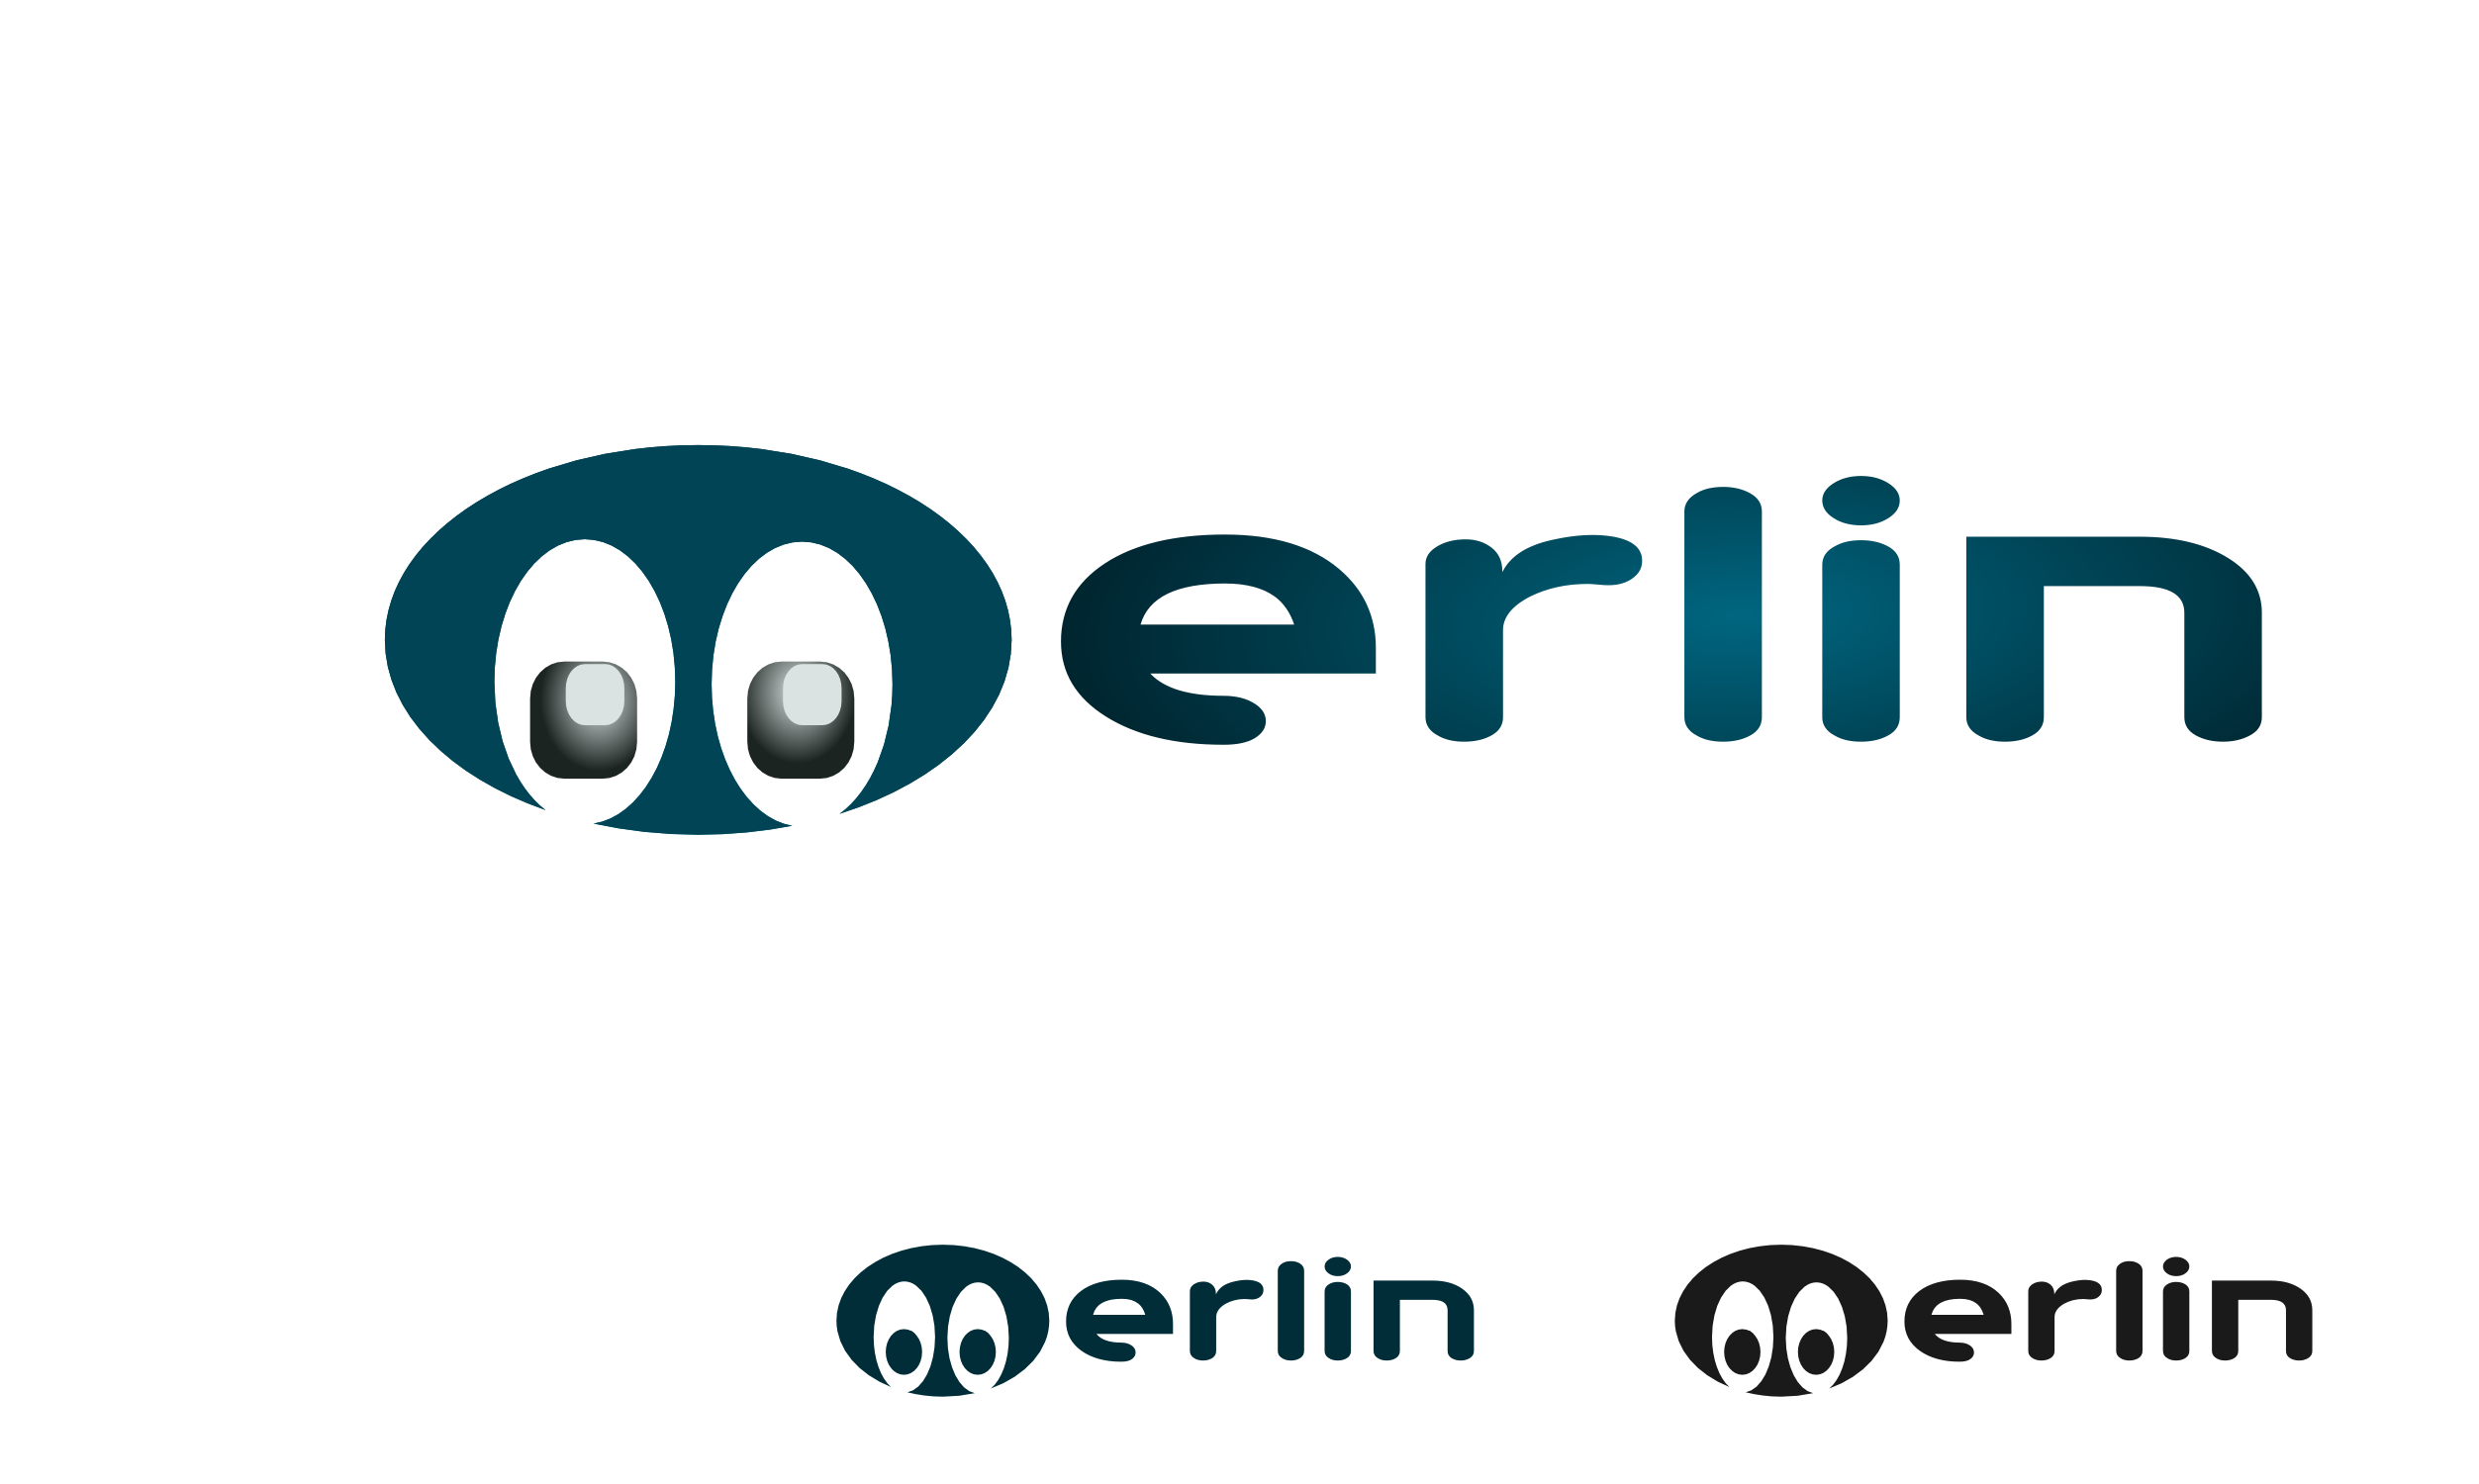 Logo Design by Arindam Khanda - Entry No. 67 in the Logo Design Contest Imaginative Logo Design for Merlin.